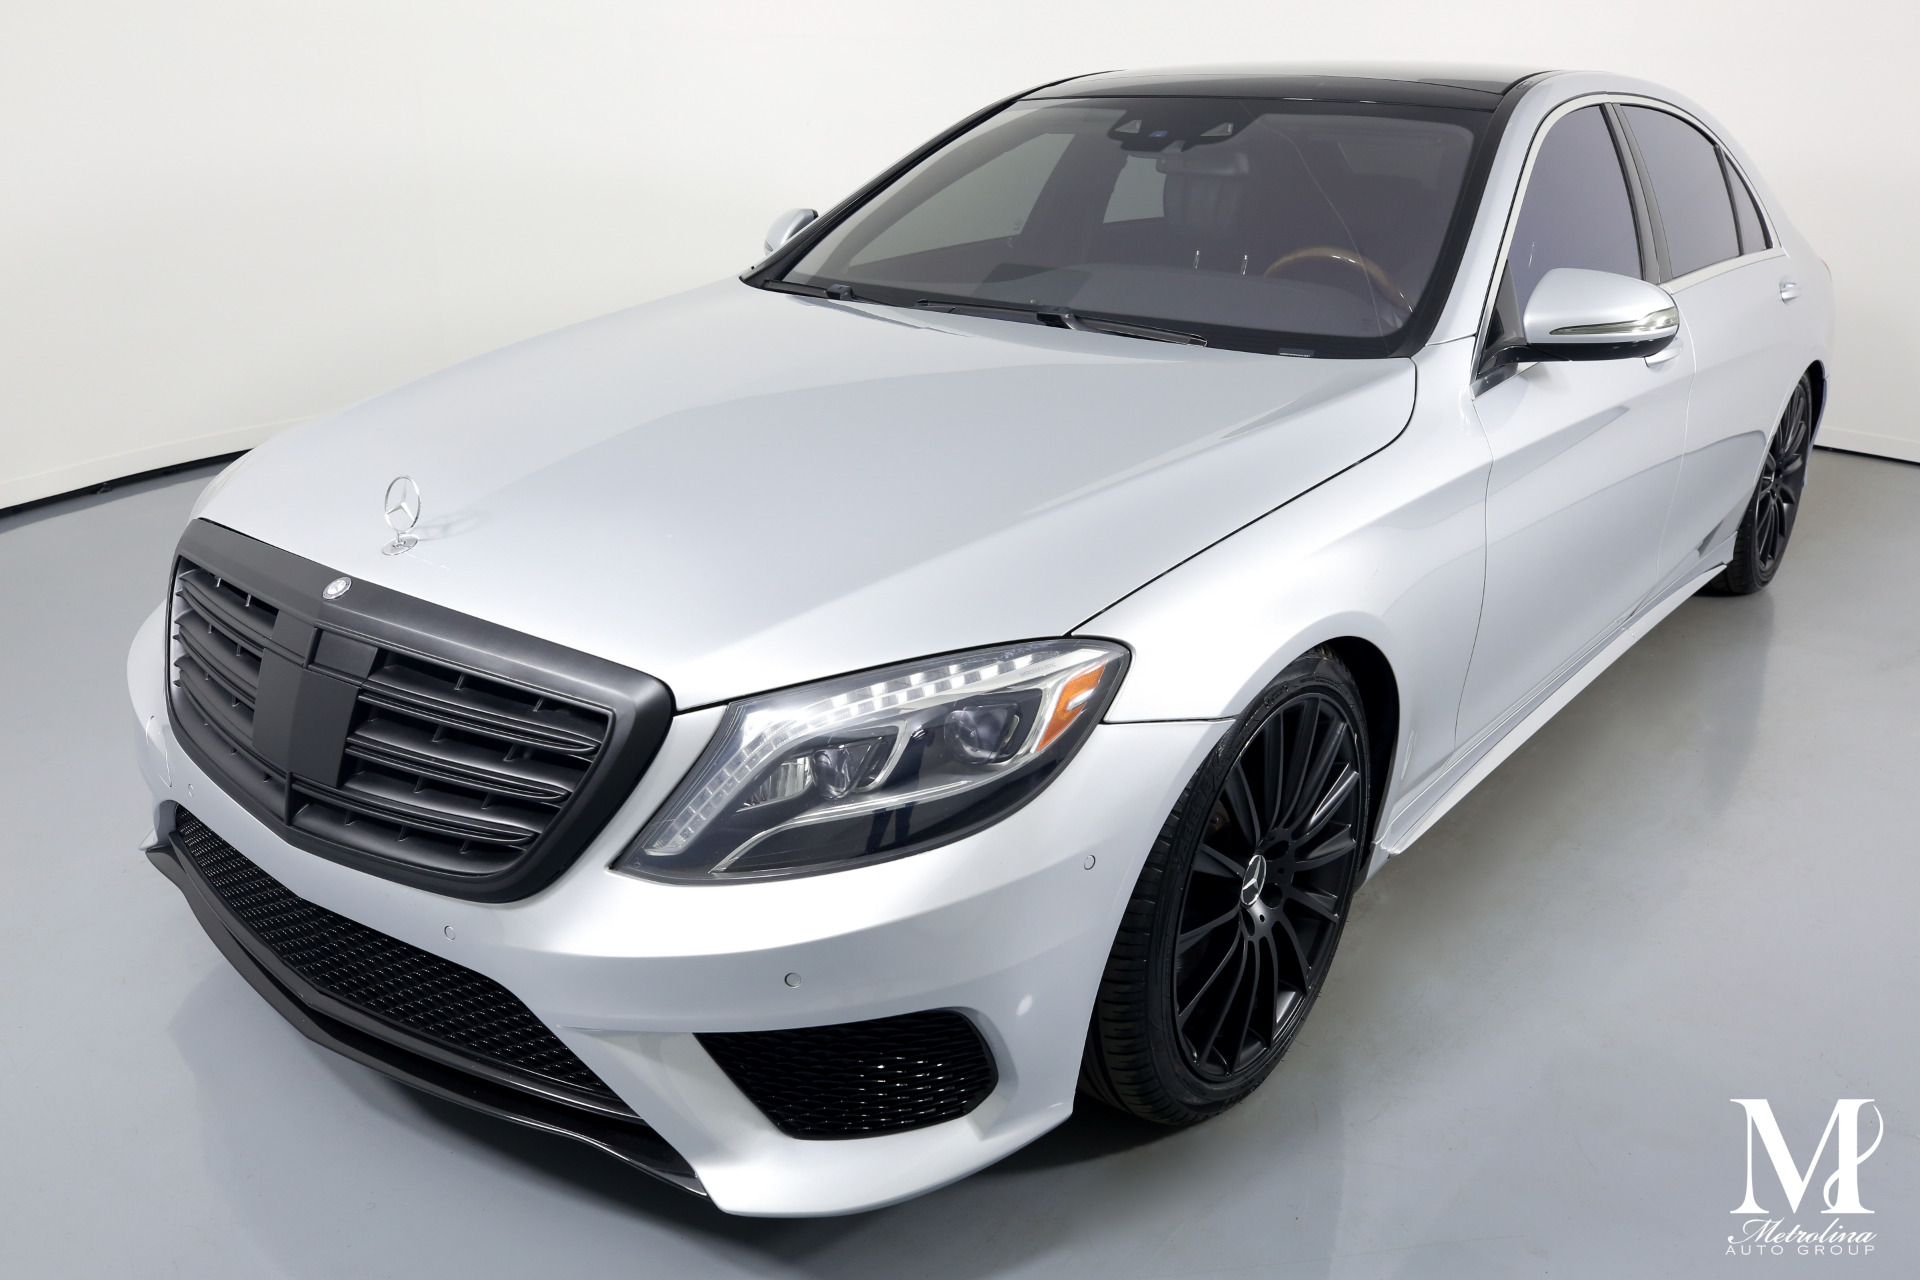 Used 2014 Mercedes-Benz S-Class S 550 for sale $44,996 at Metrolina Auto Group in Charlotte NC 28217 - 4